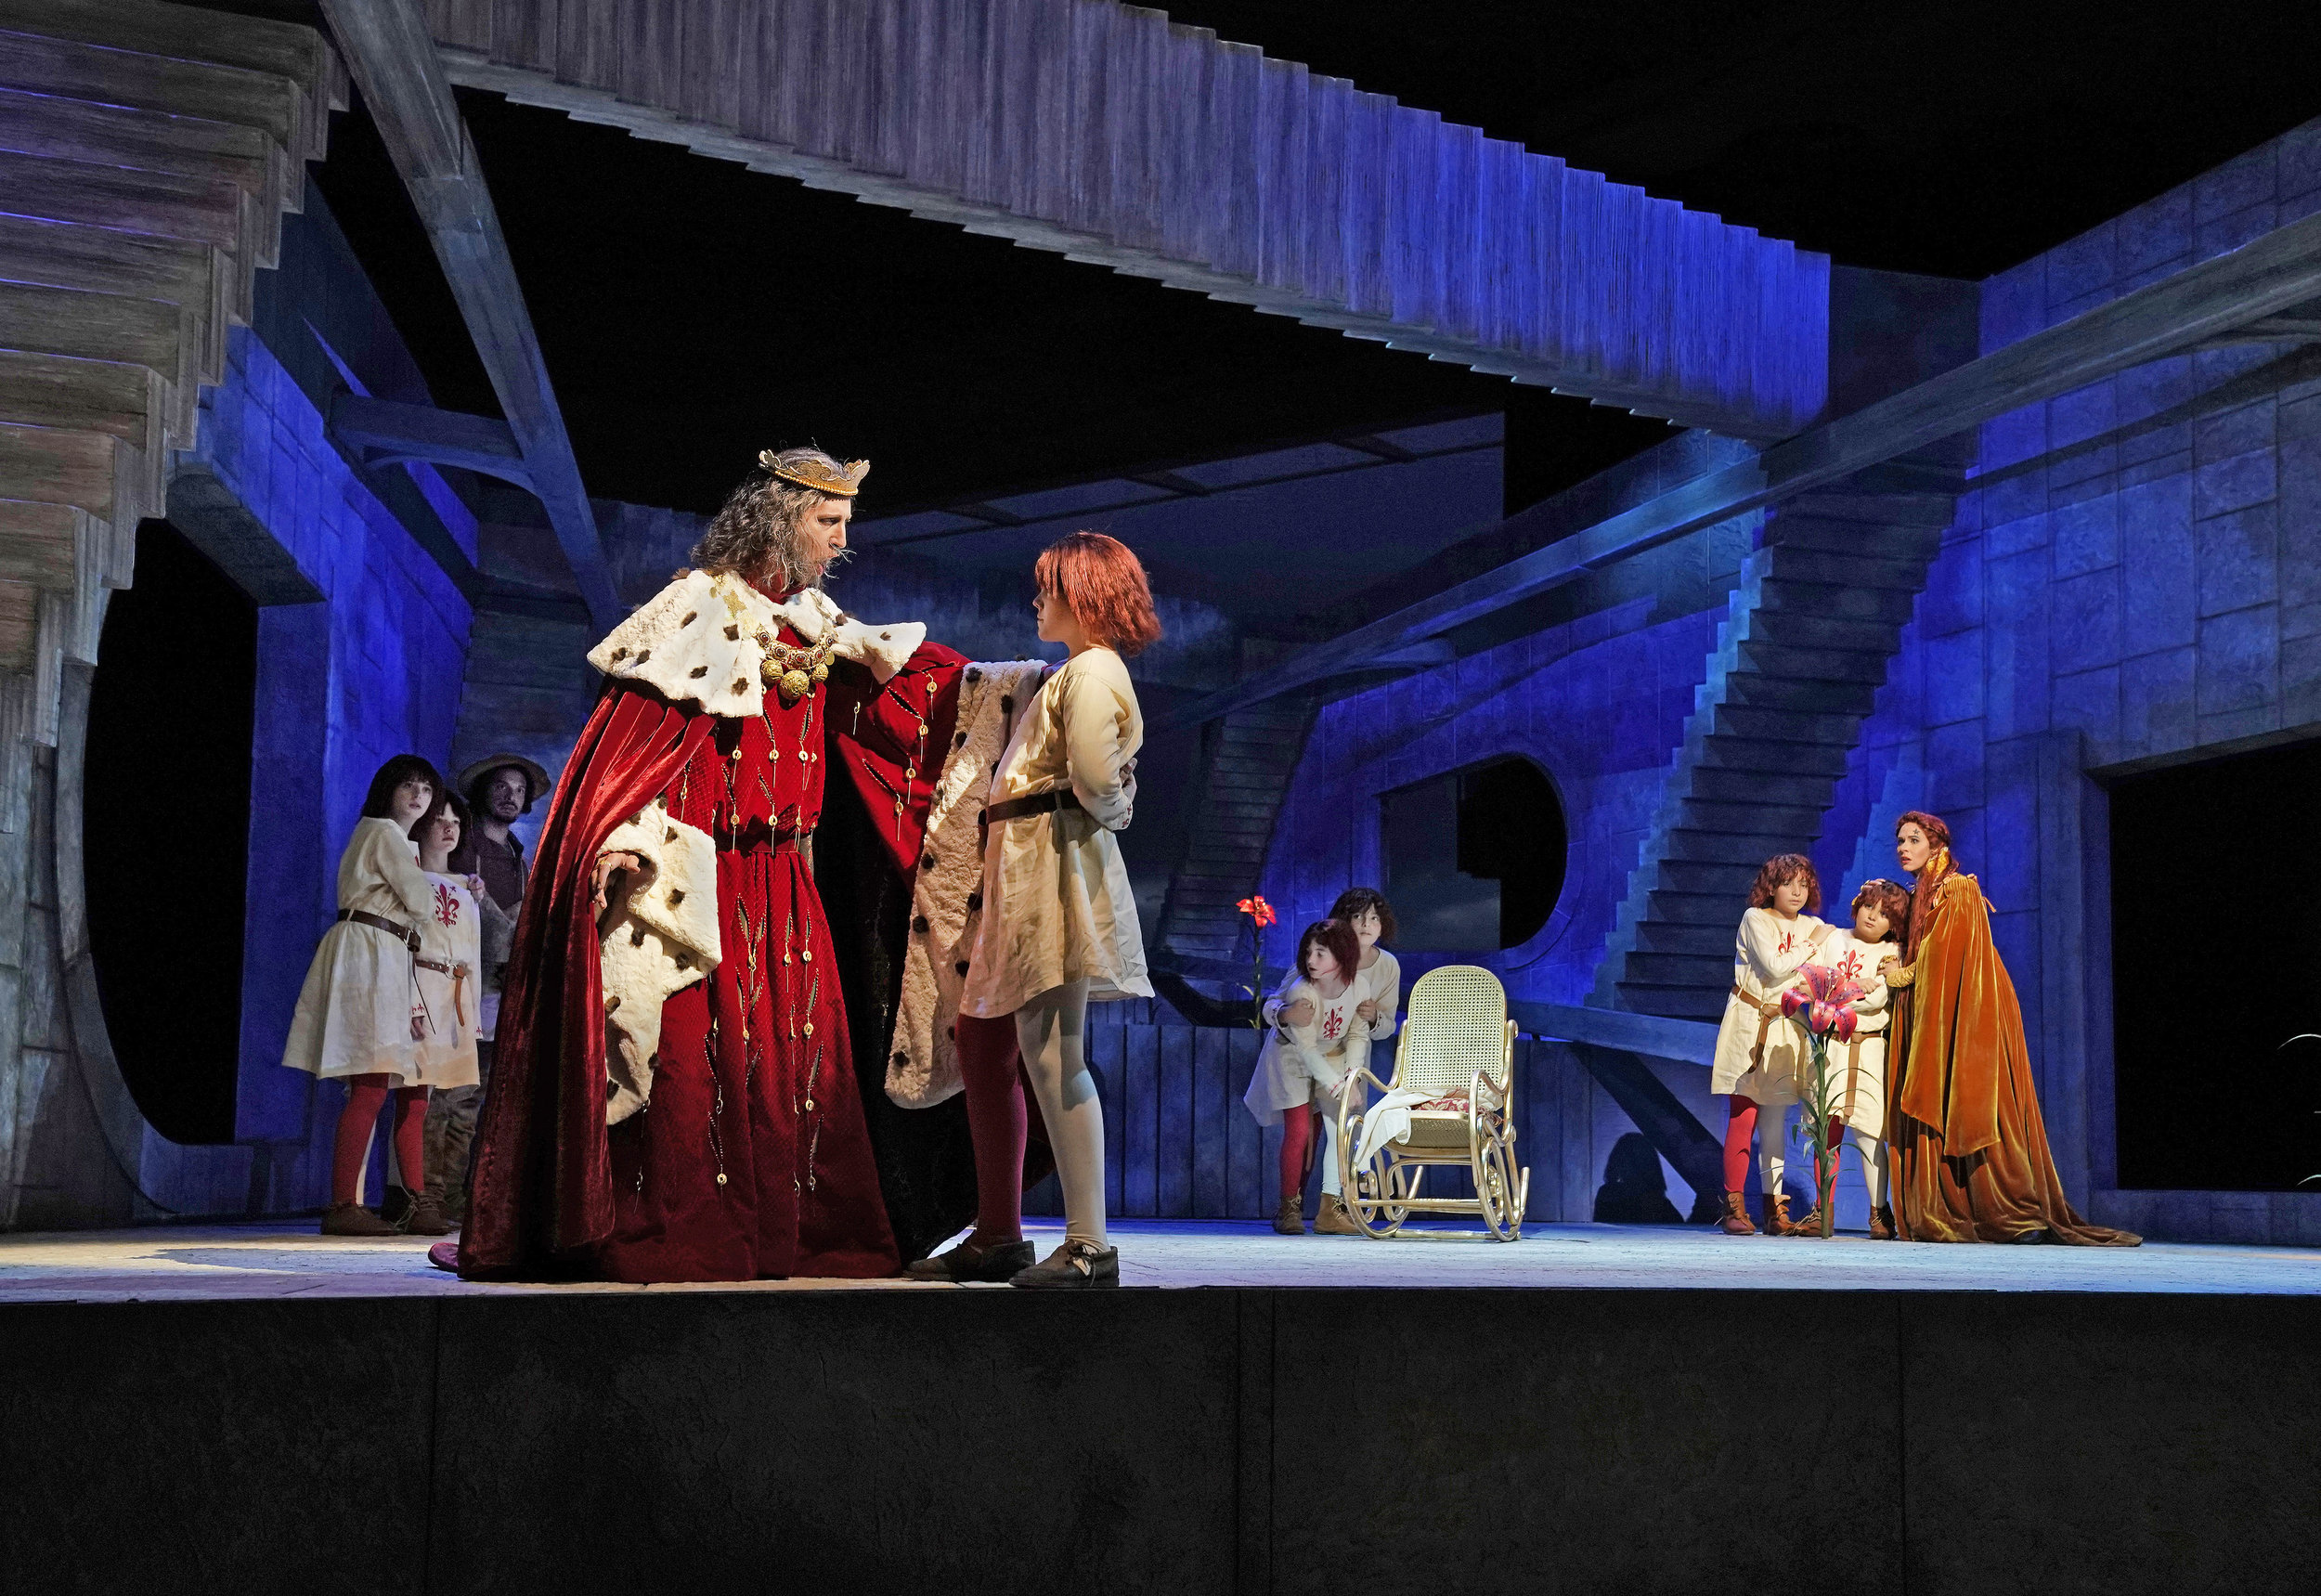 King Hjarne (David Leigh) talks with his young son Corbin as a worried Queen Gertrude (Tamara Mumford) and other sons look on. Photo by Ken Howard; courtesy of Santa Fe Opera.